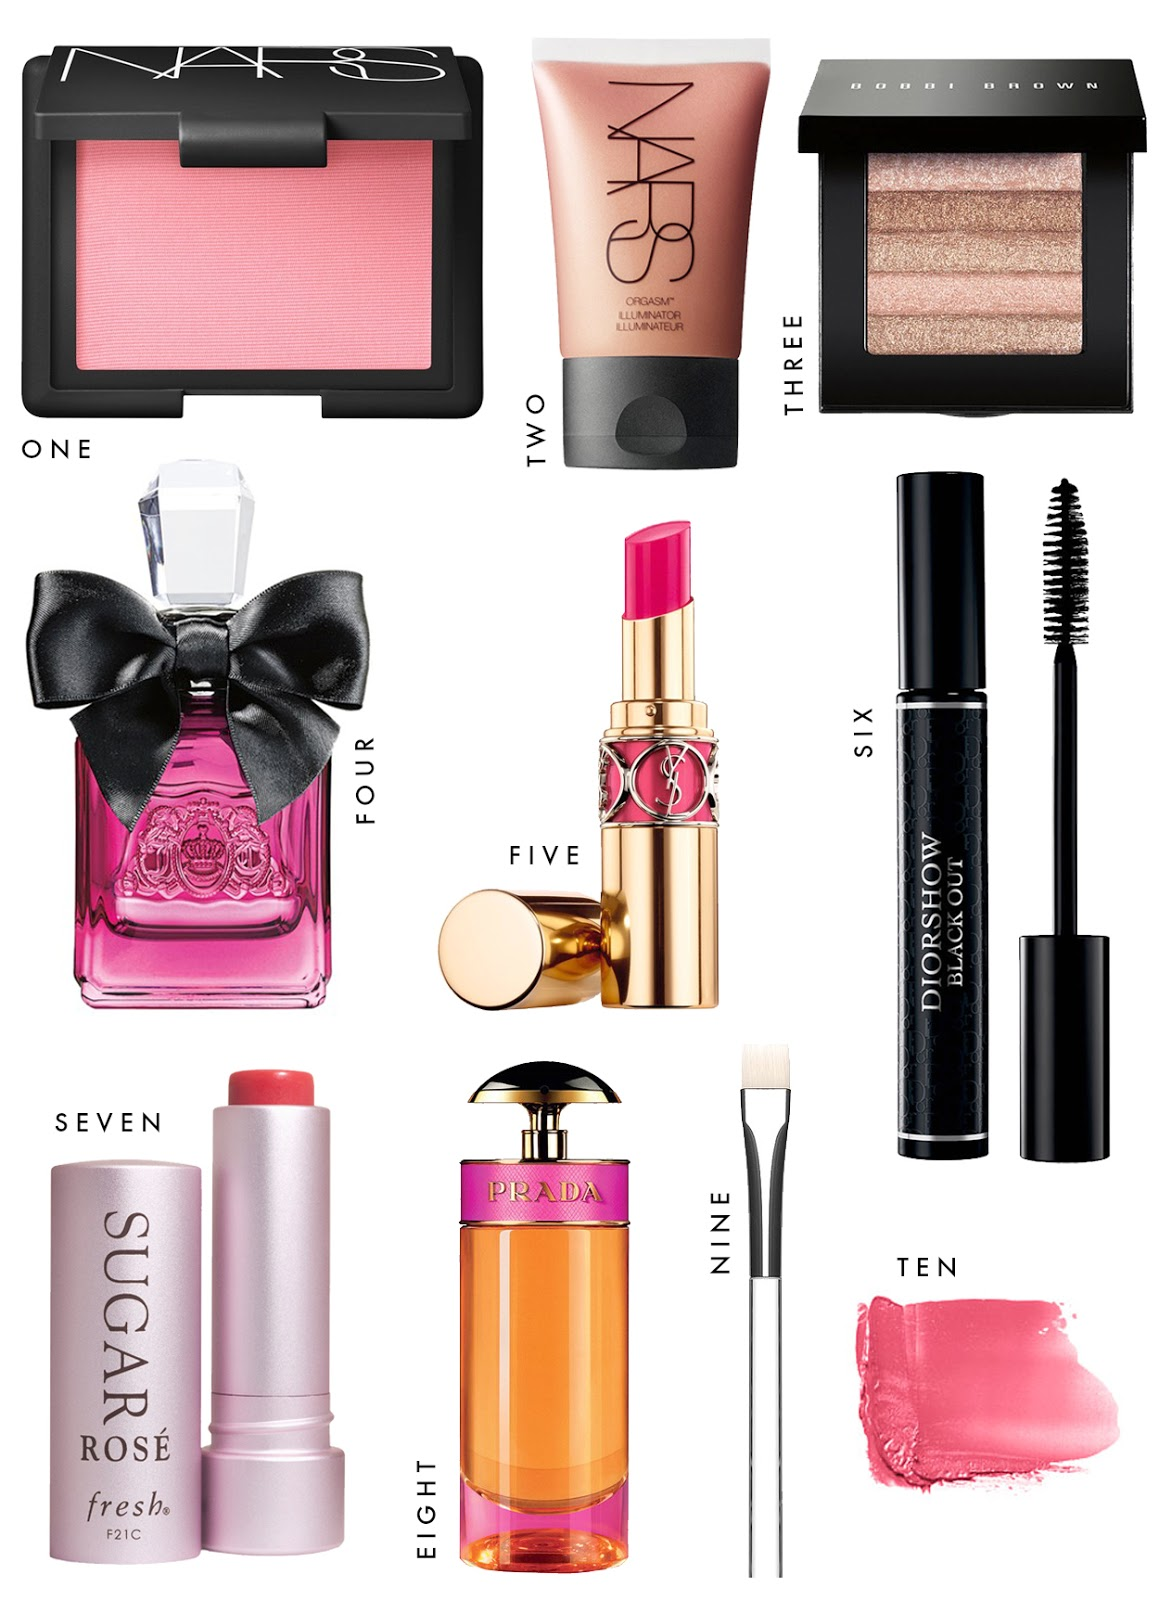 top-rated-nordstrom-beauty-products